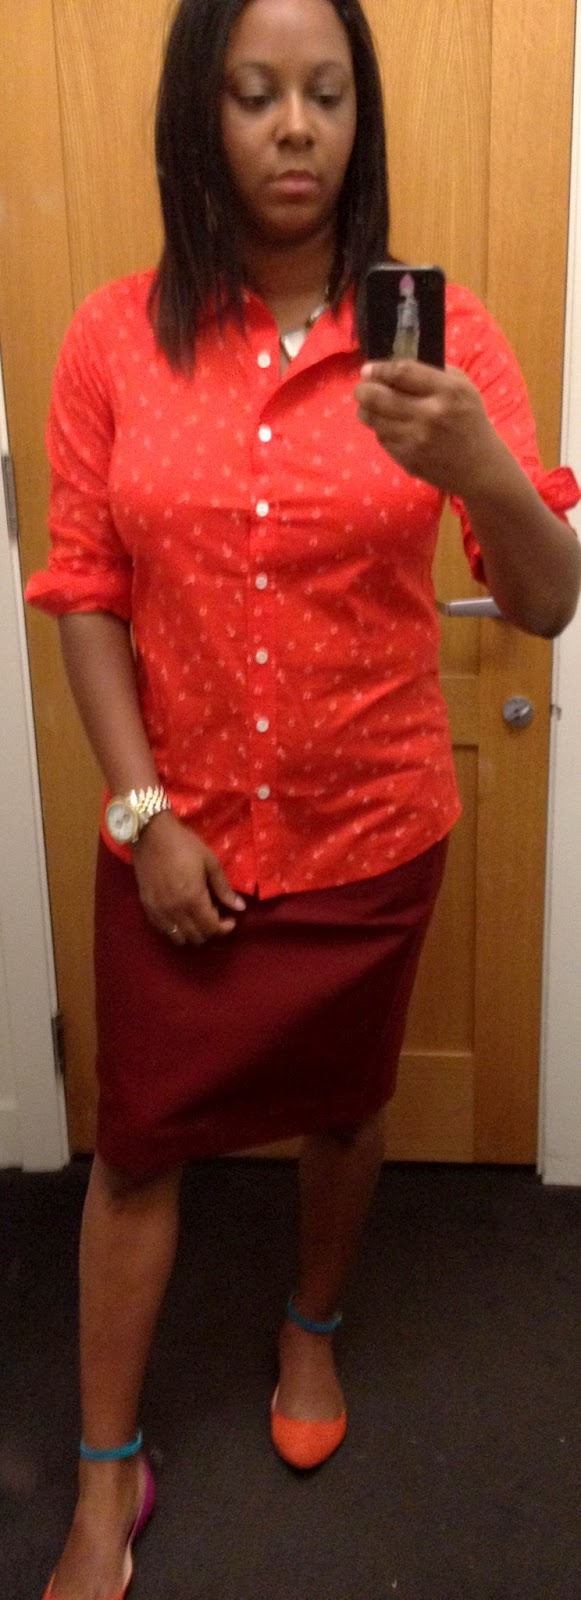 587c4629 Ahh, more anchors, this time in a button down shirt and horseshoes! This  shirt is a pretty red color and it is a real red and not an orange-red, ...